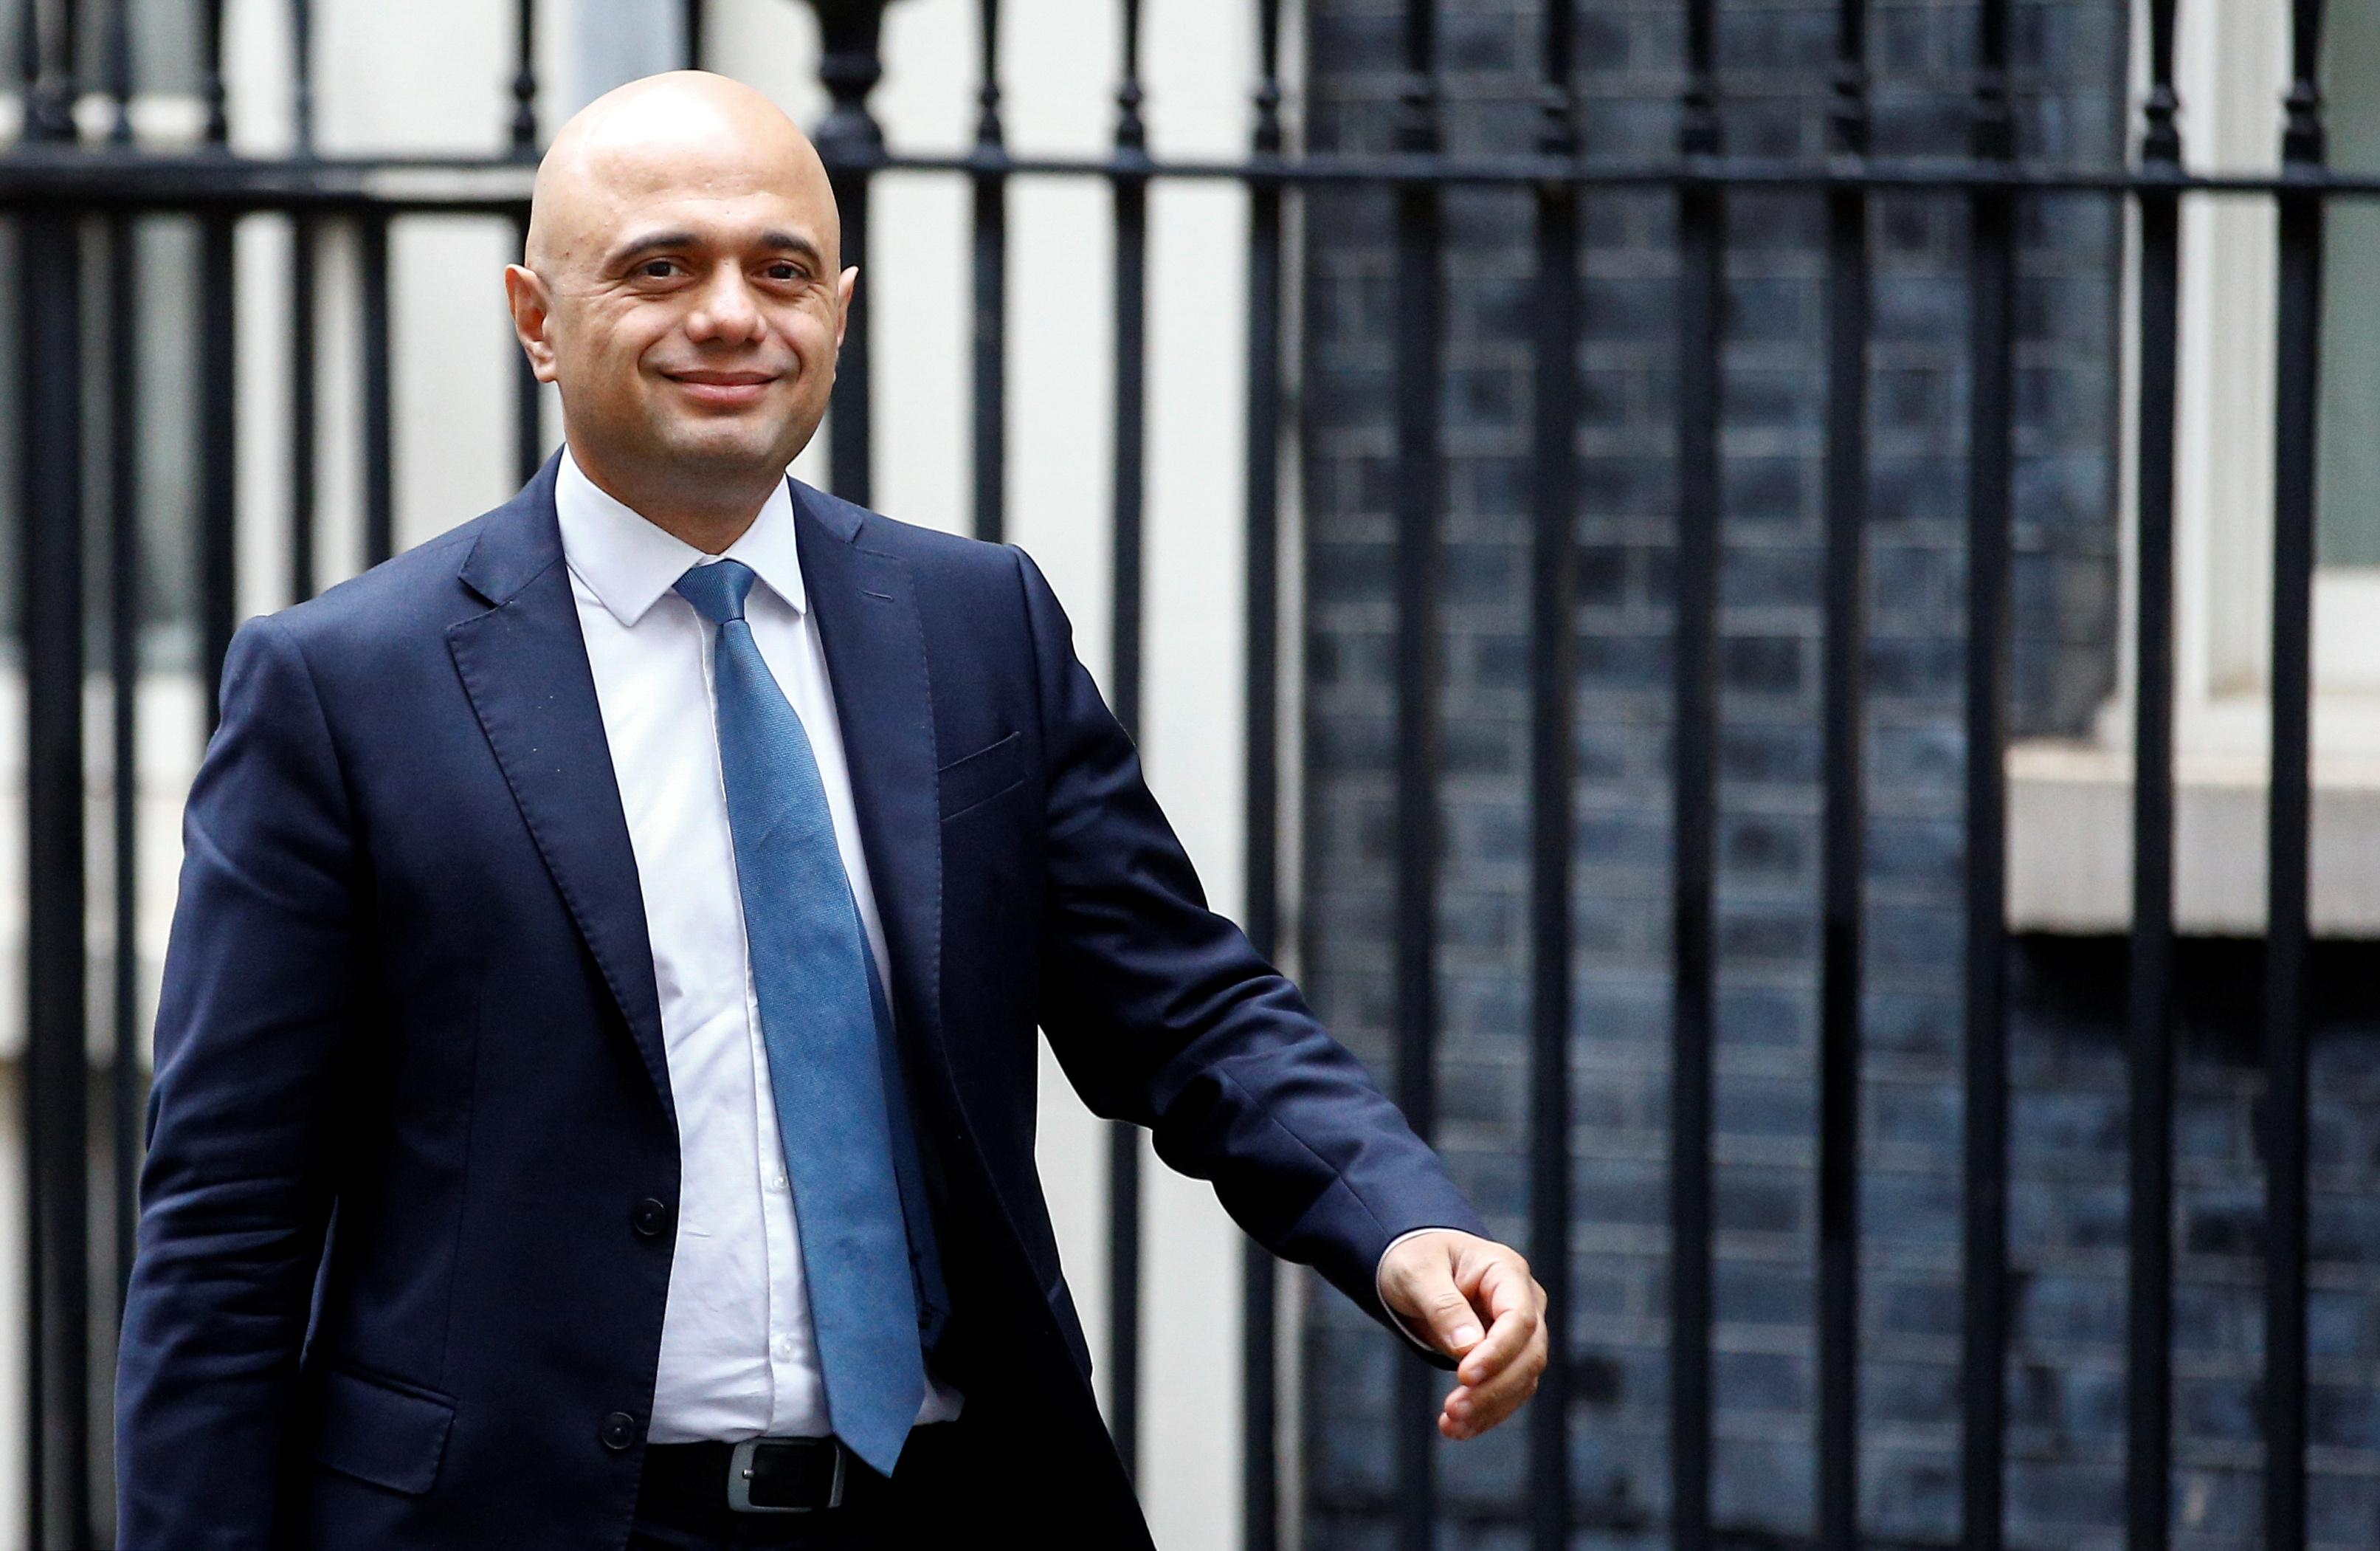 UK's Javid, eyeing investment, promises a decade of economic renewal